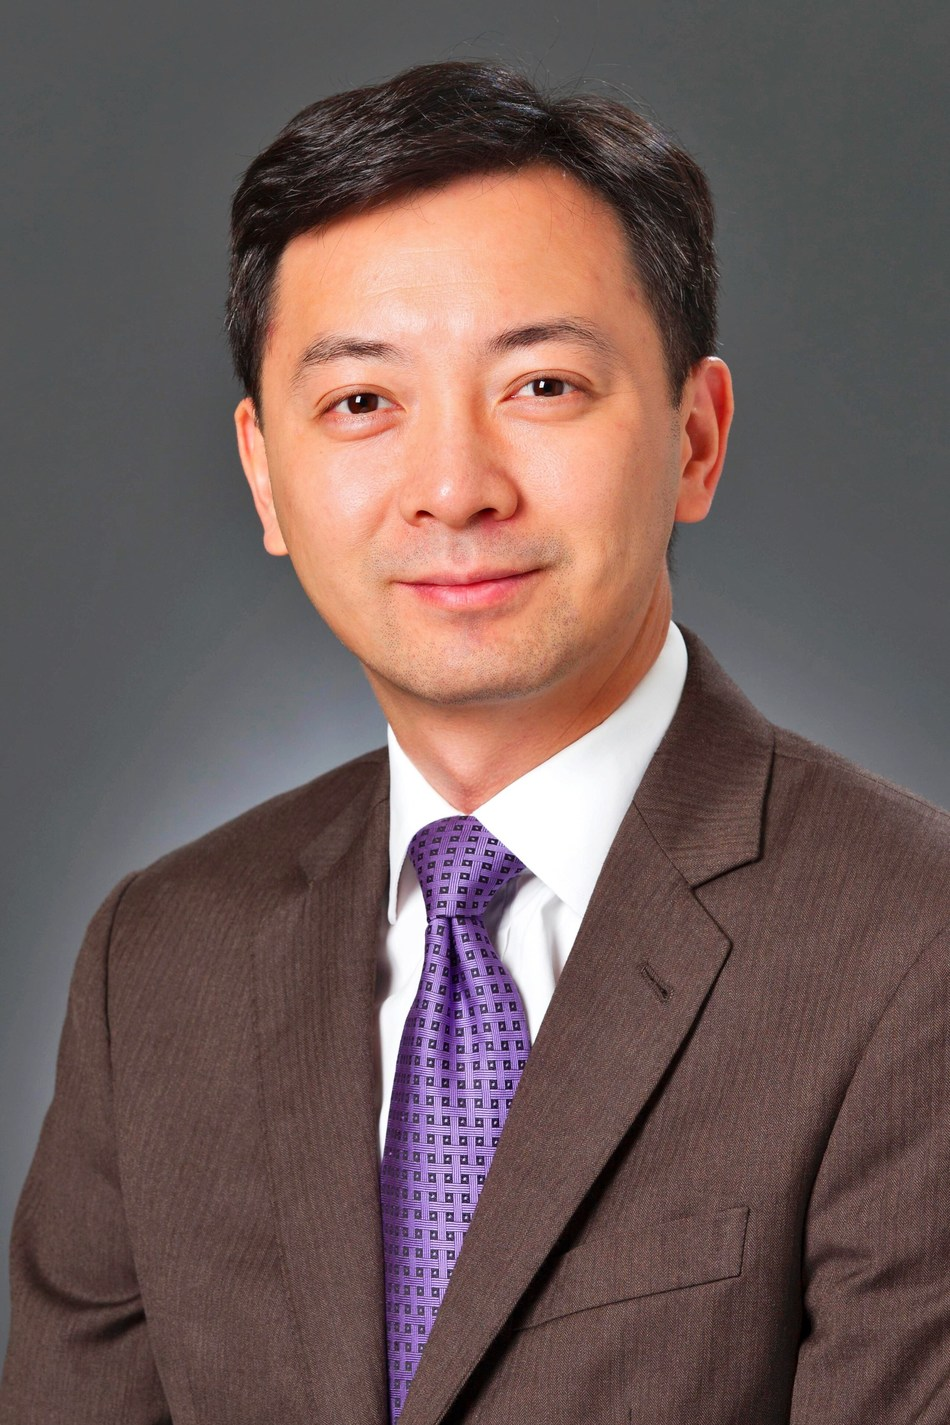 Morgan Stanley's Asia Transportation Research Head, Mr. Huaxiang (Edward) Xu, Joins EHang as Chief Strategy Officer.